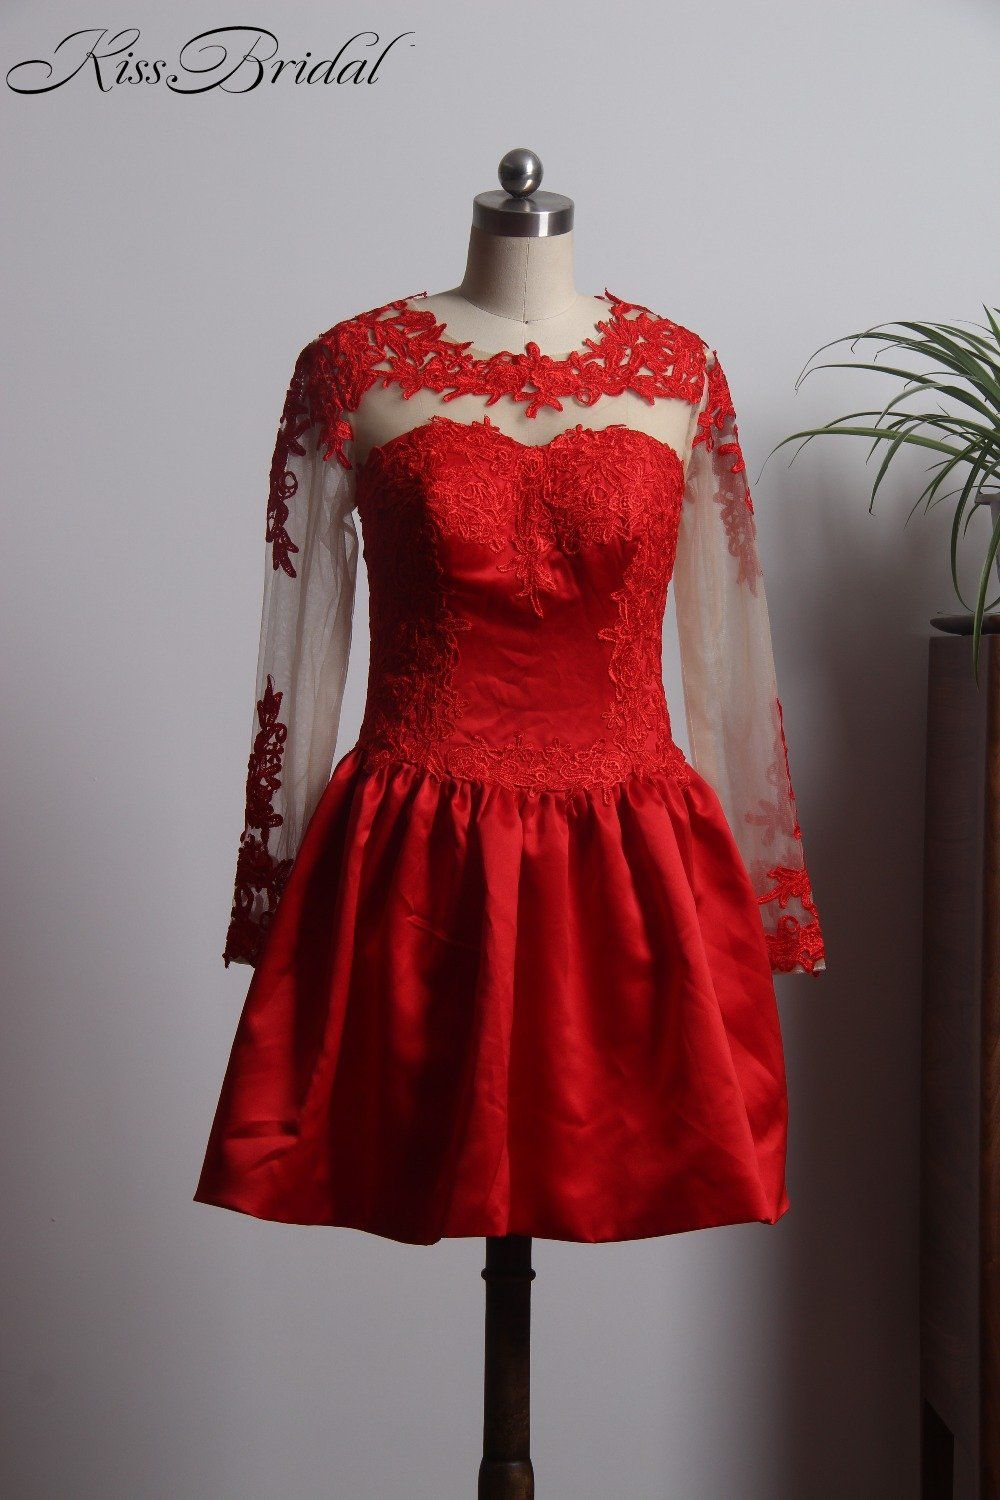 Newest style red prom dresses short long sleeve satin